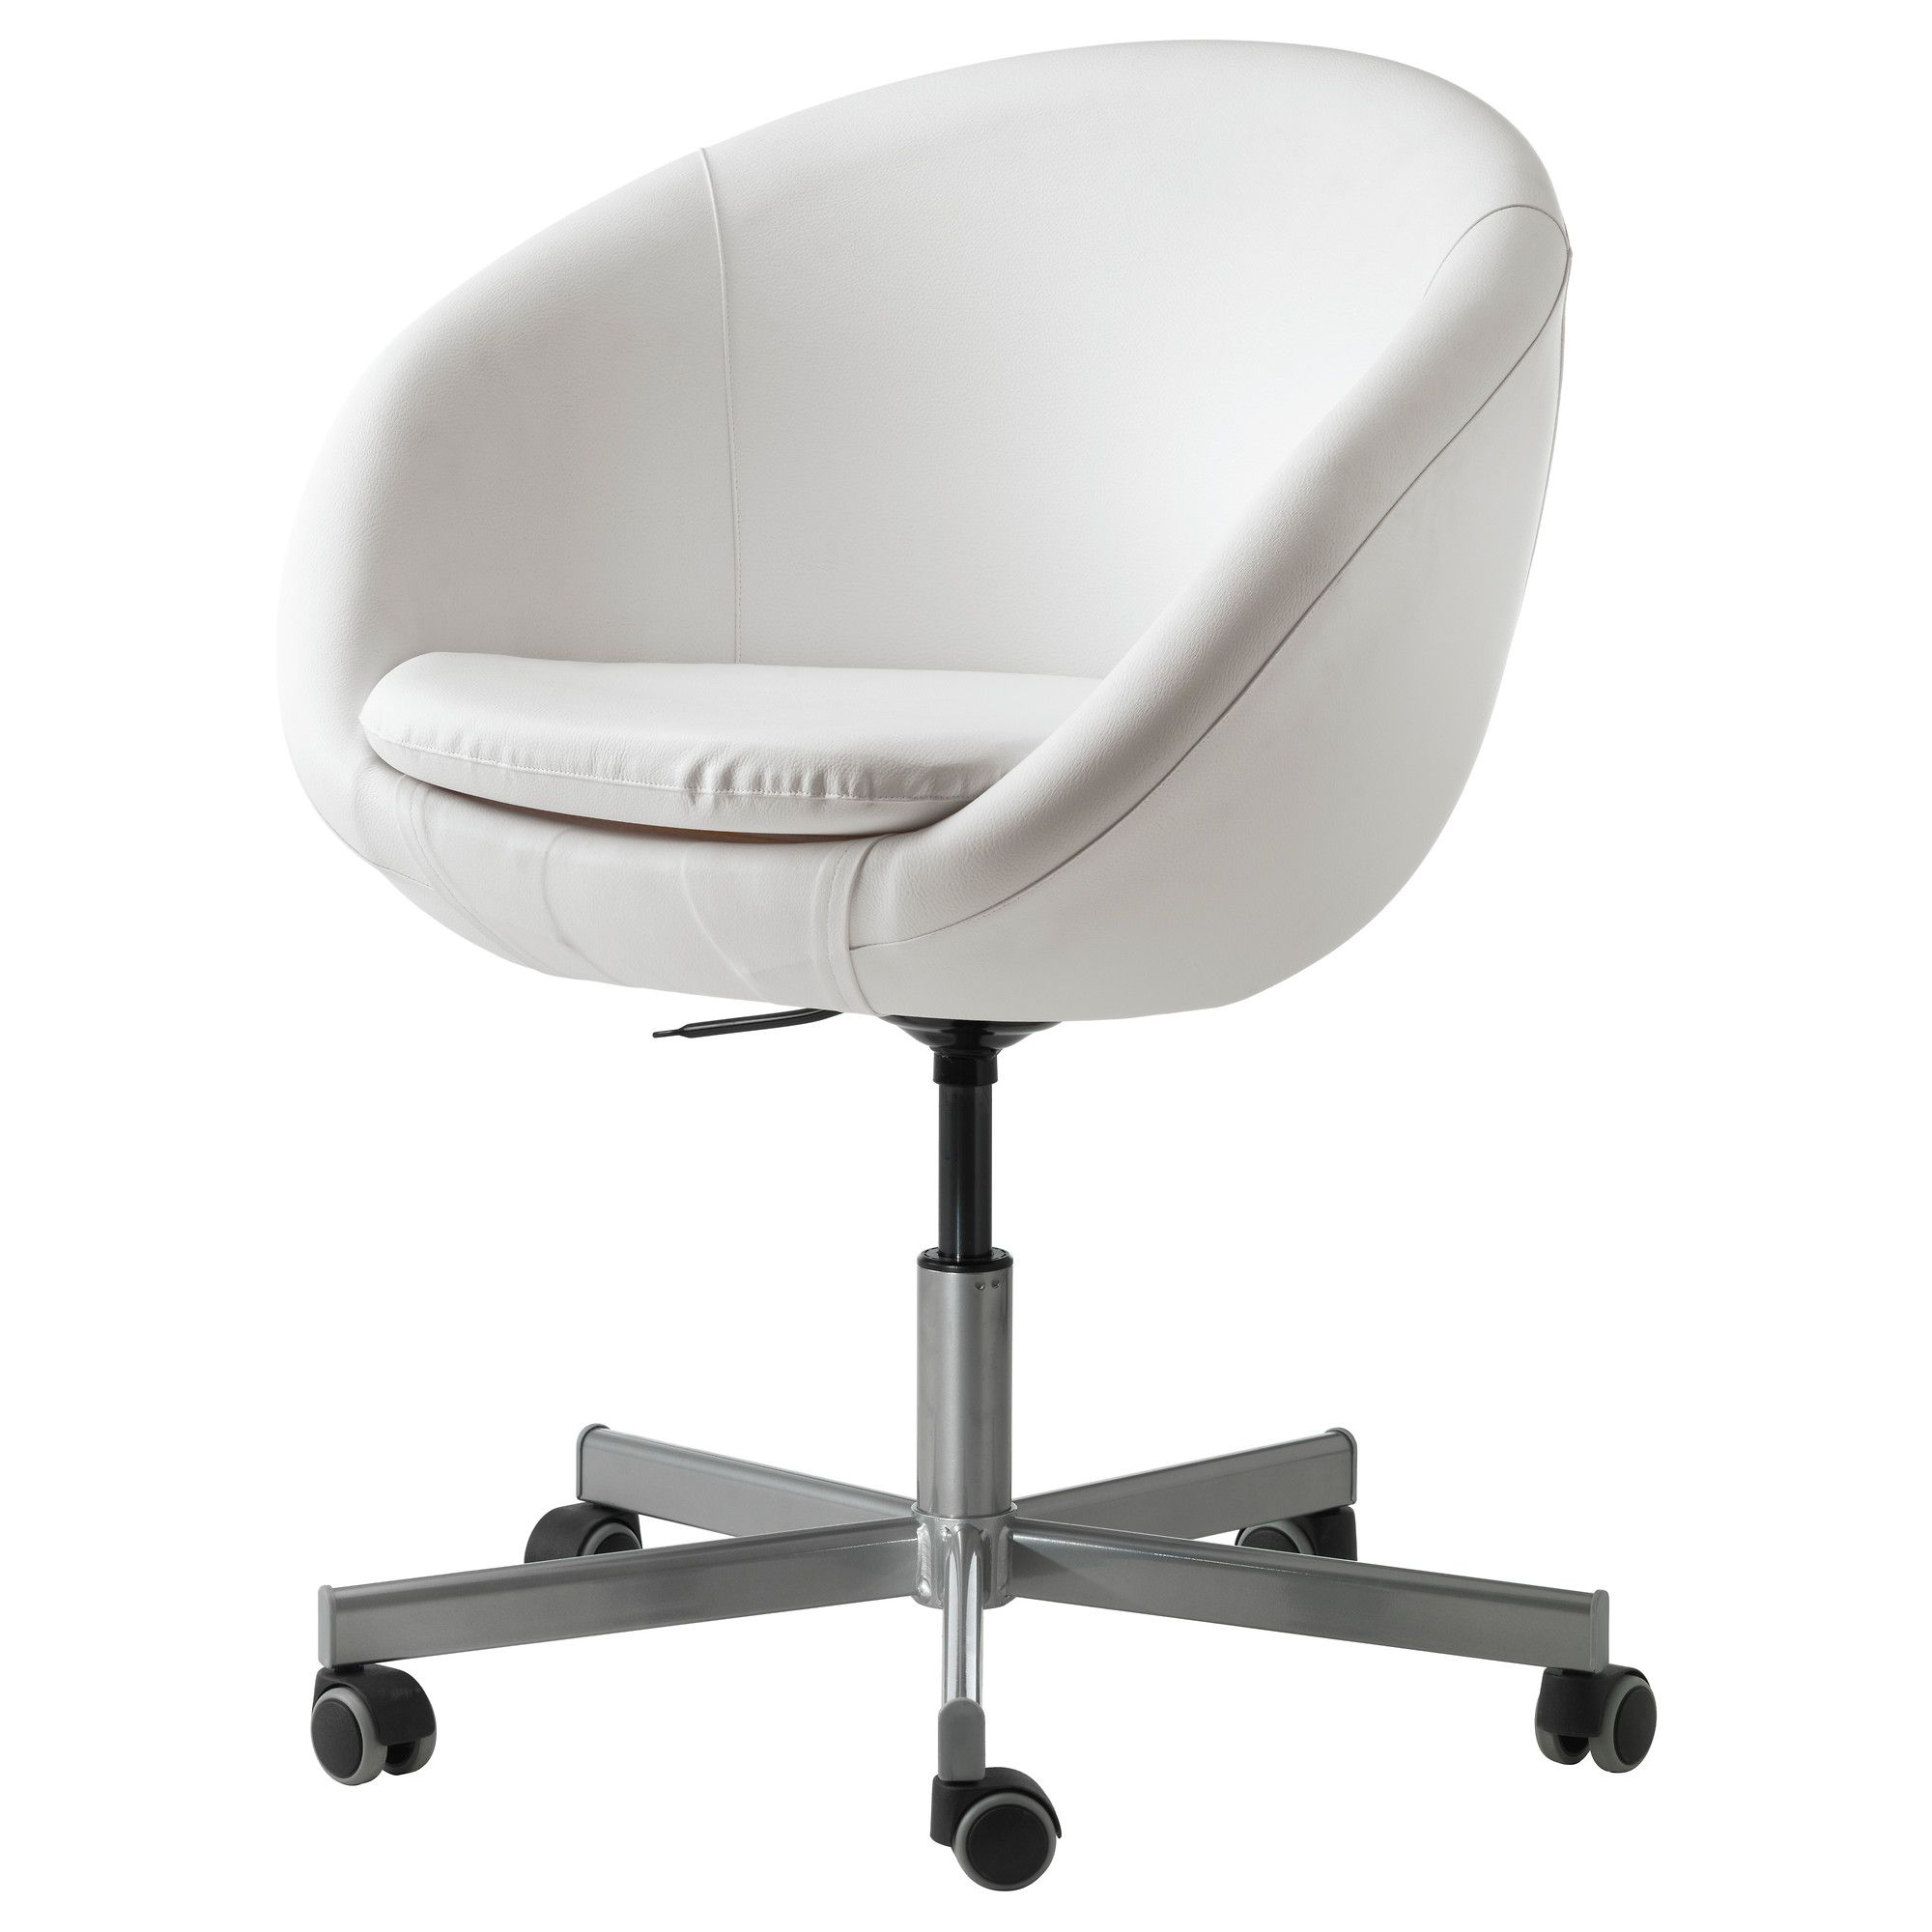 gregor swivel chair vittaryd white. SKRUVSTA Swivel Chair - Idhult White IKEA (The Perfectly Cute And Functional Seat Gregor Vittaryd ,